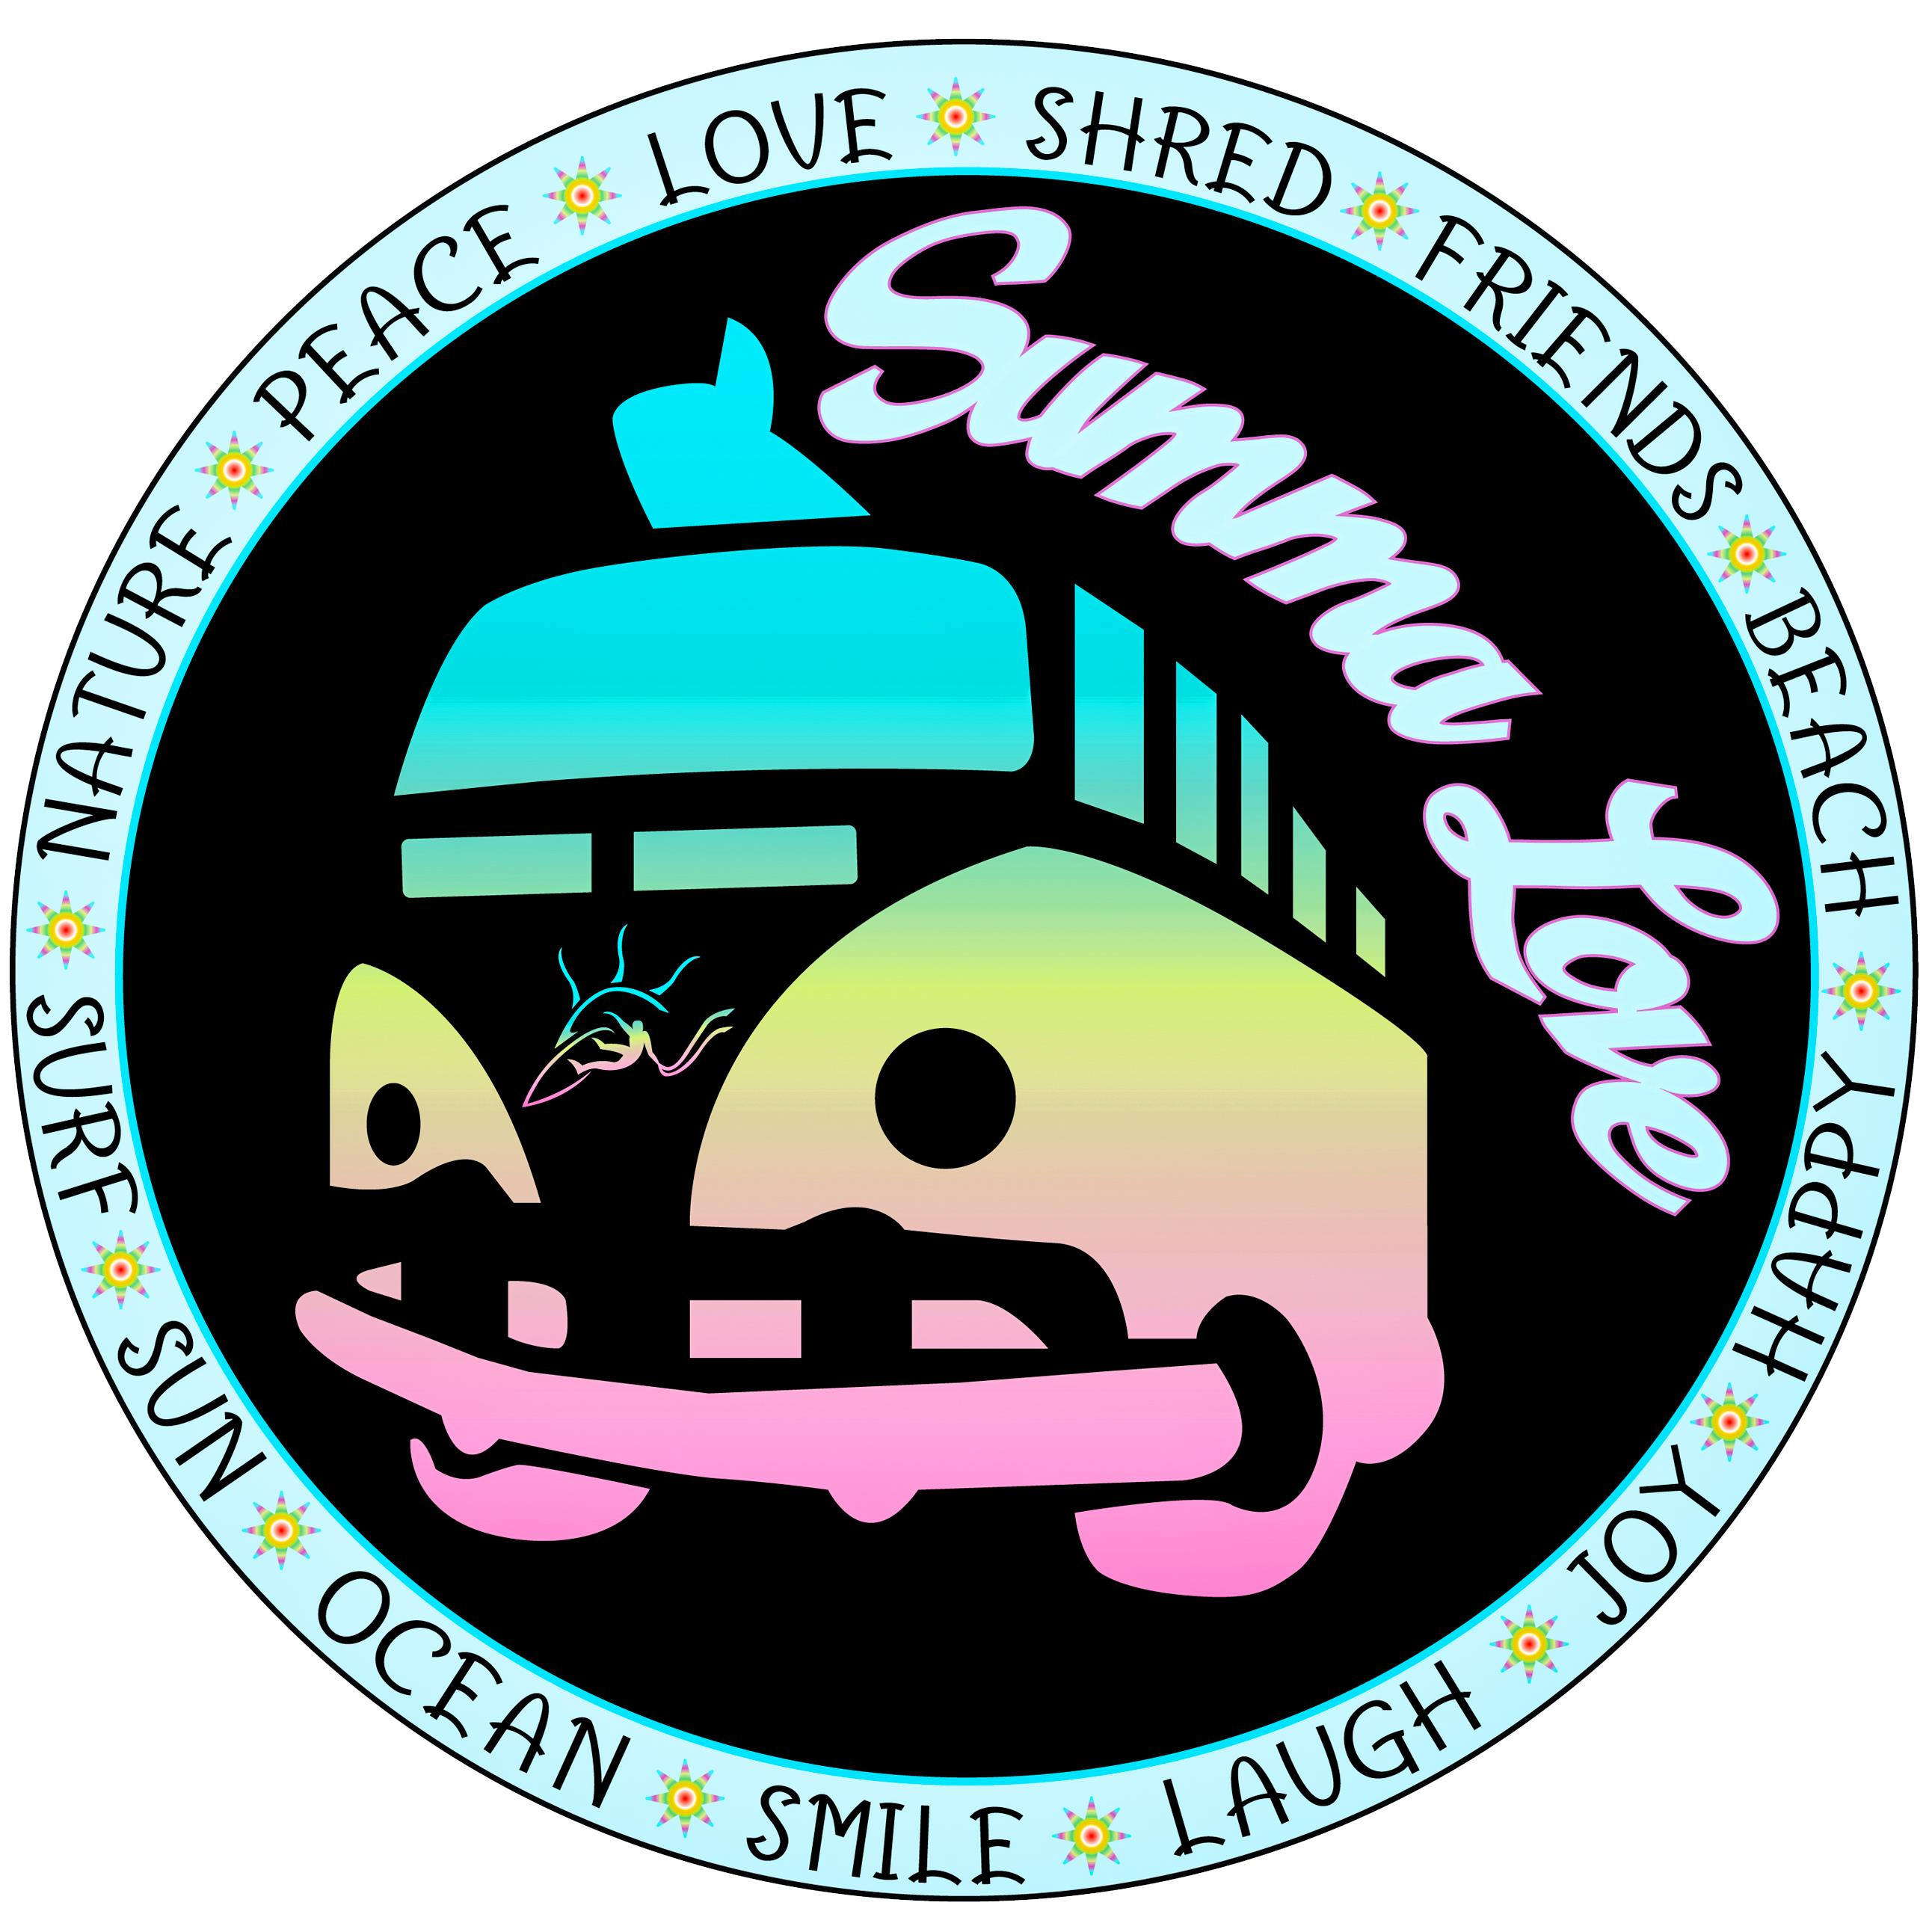 Summa Love Surf Camp